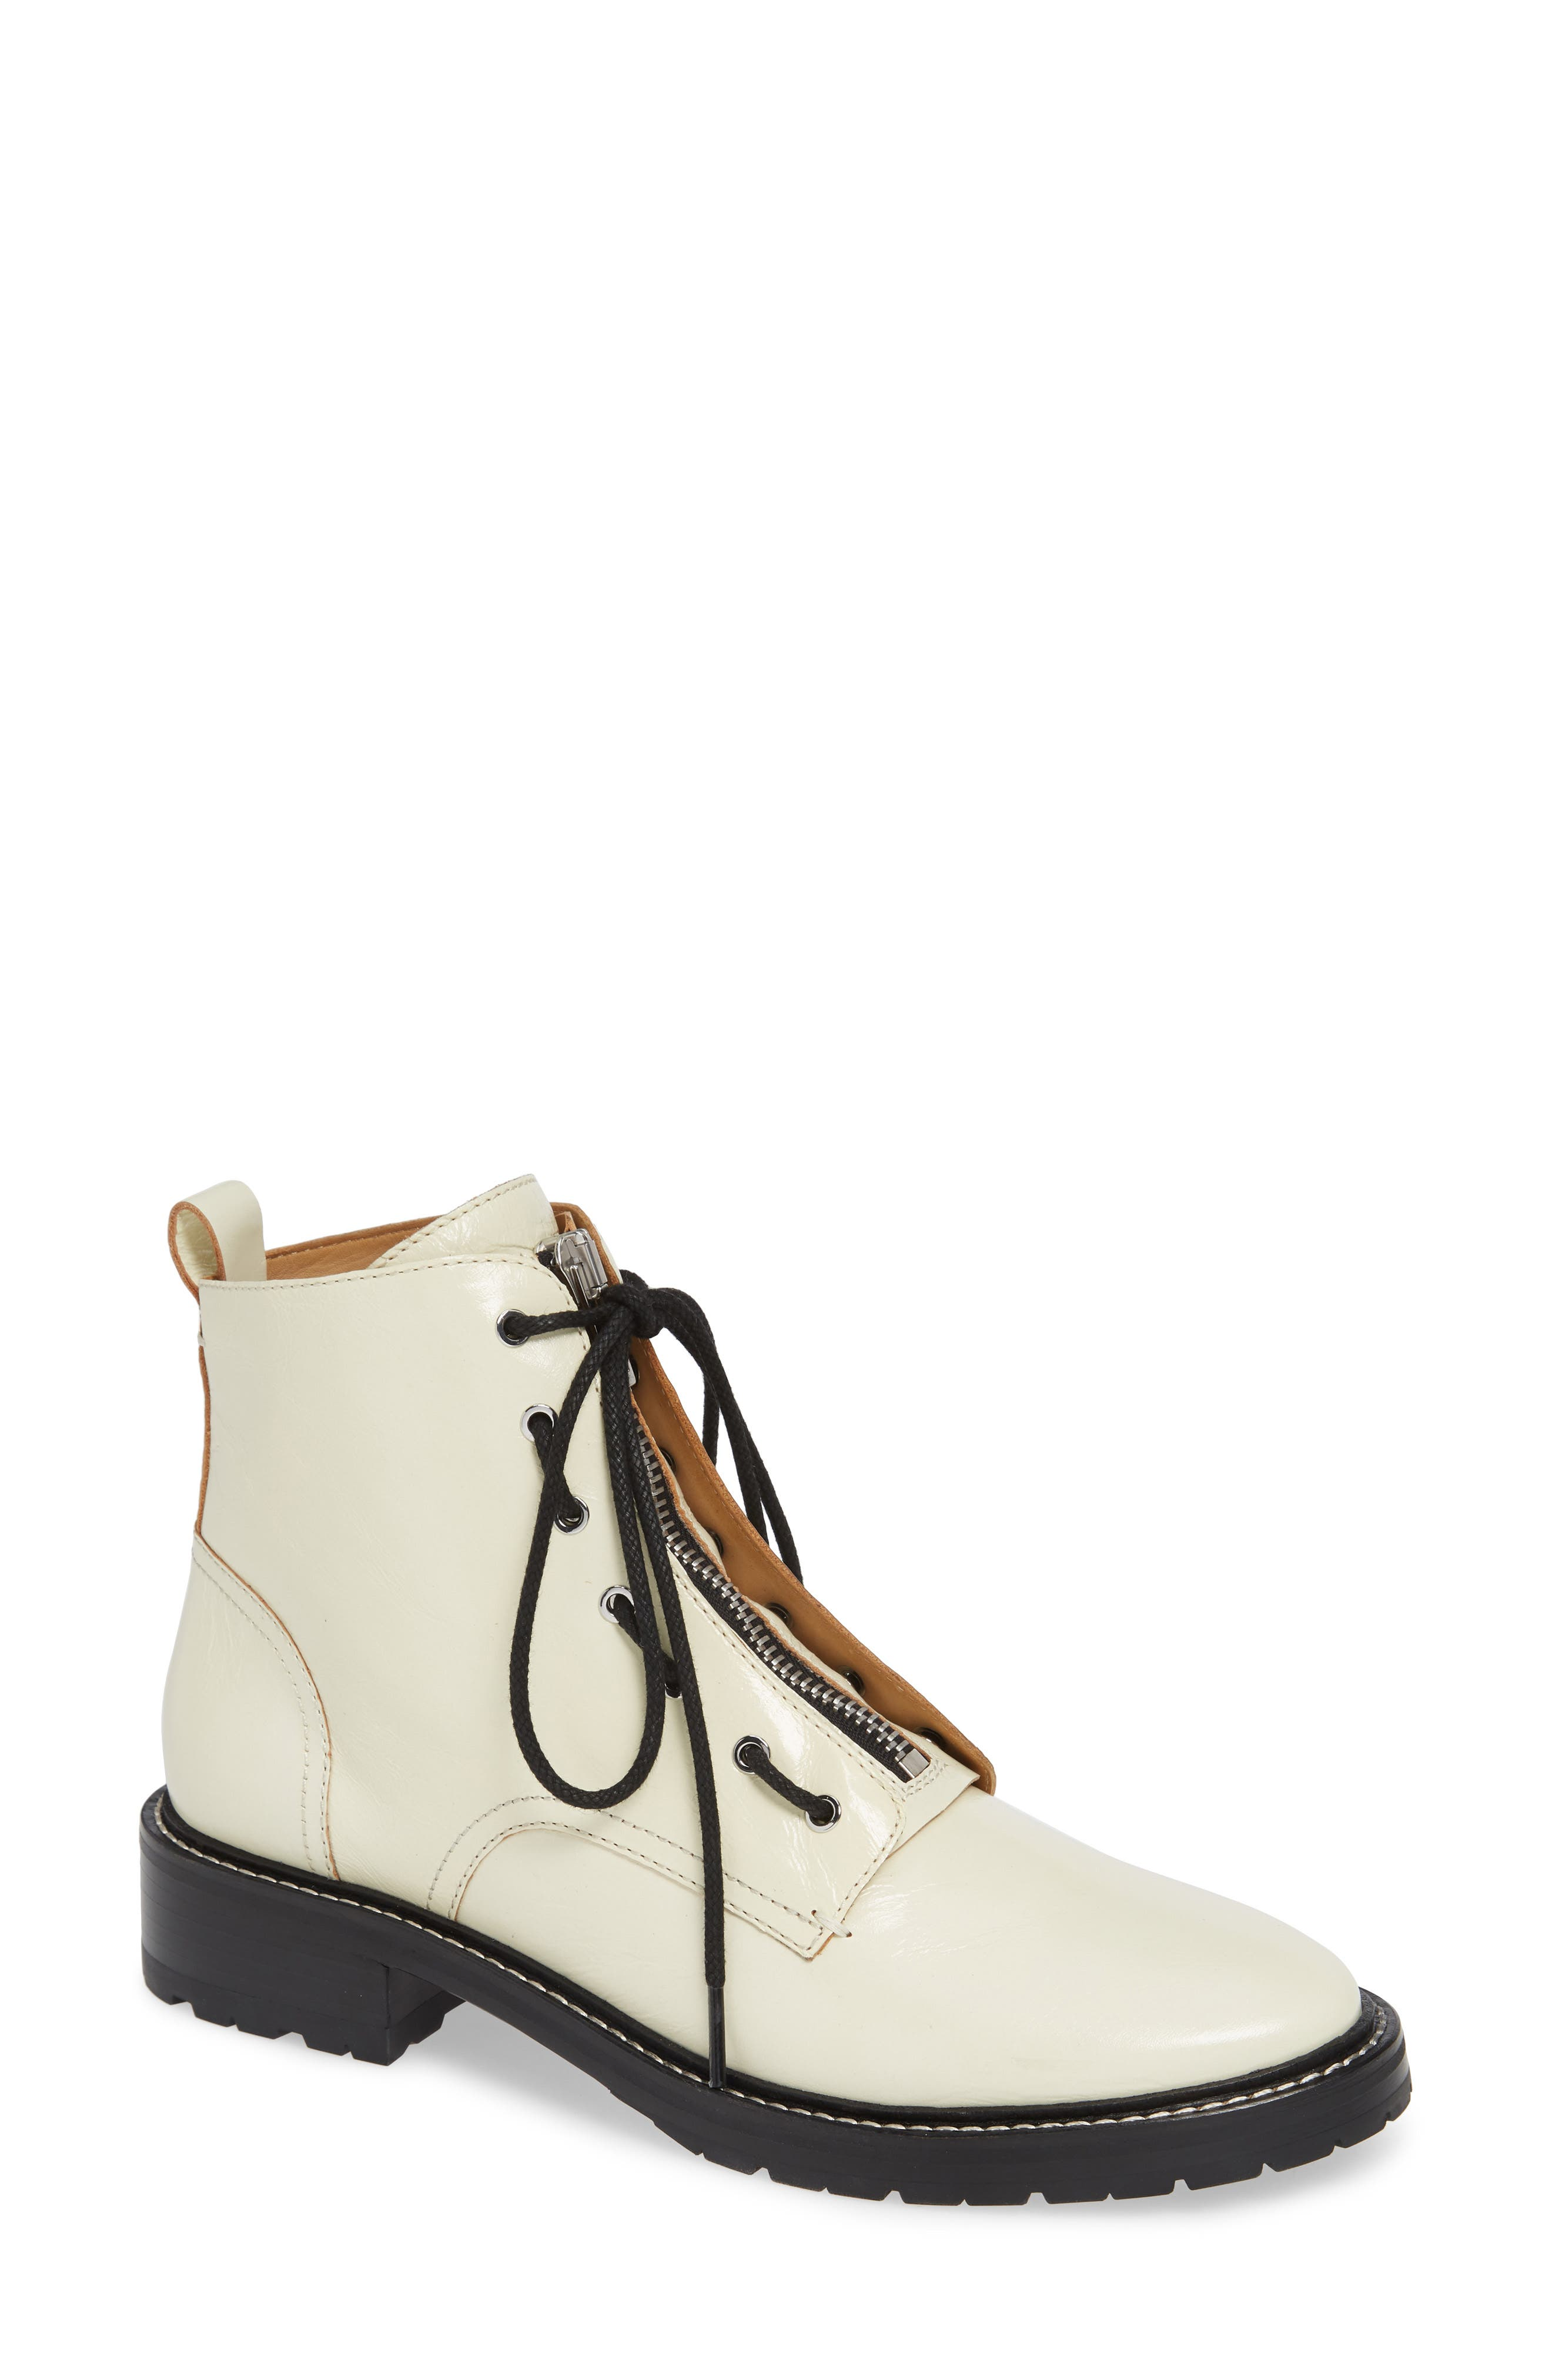 Rag & Bone Cannon Removable Zipper Boot - White